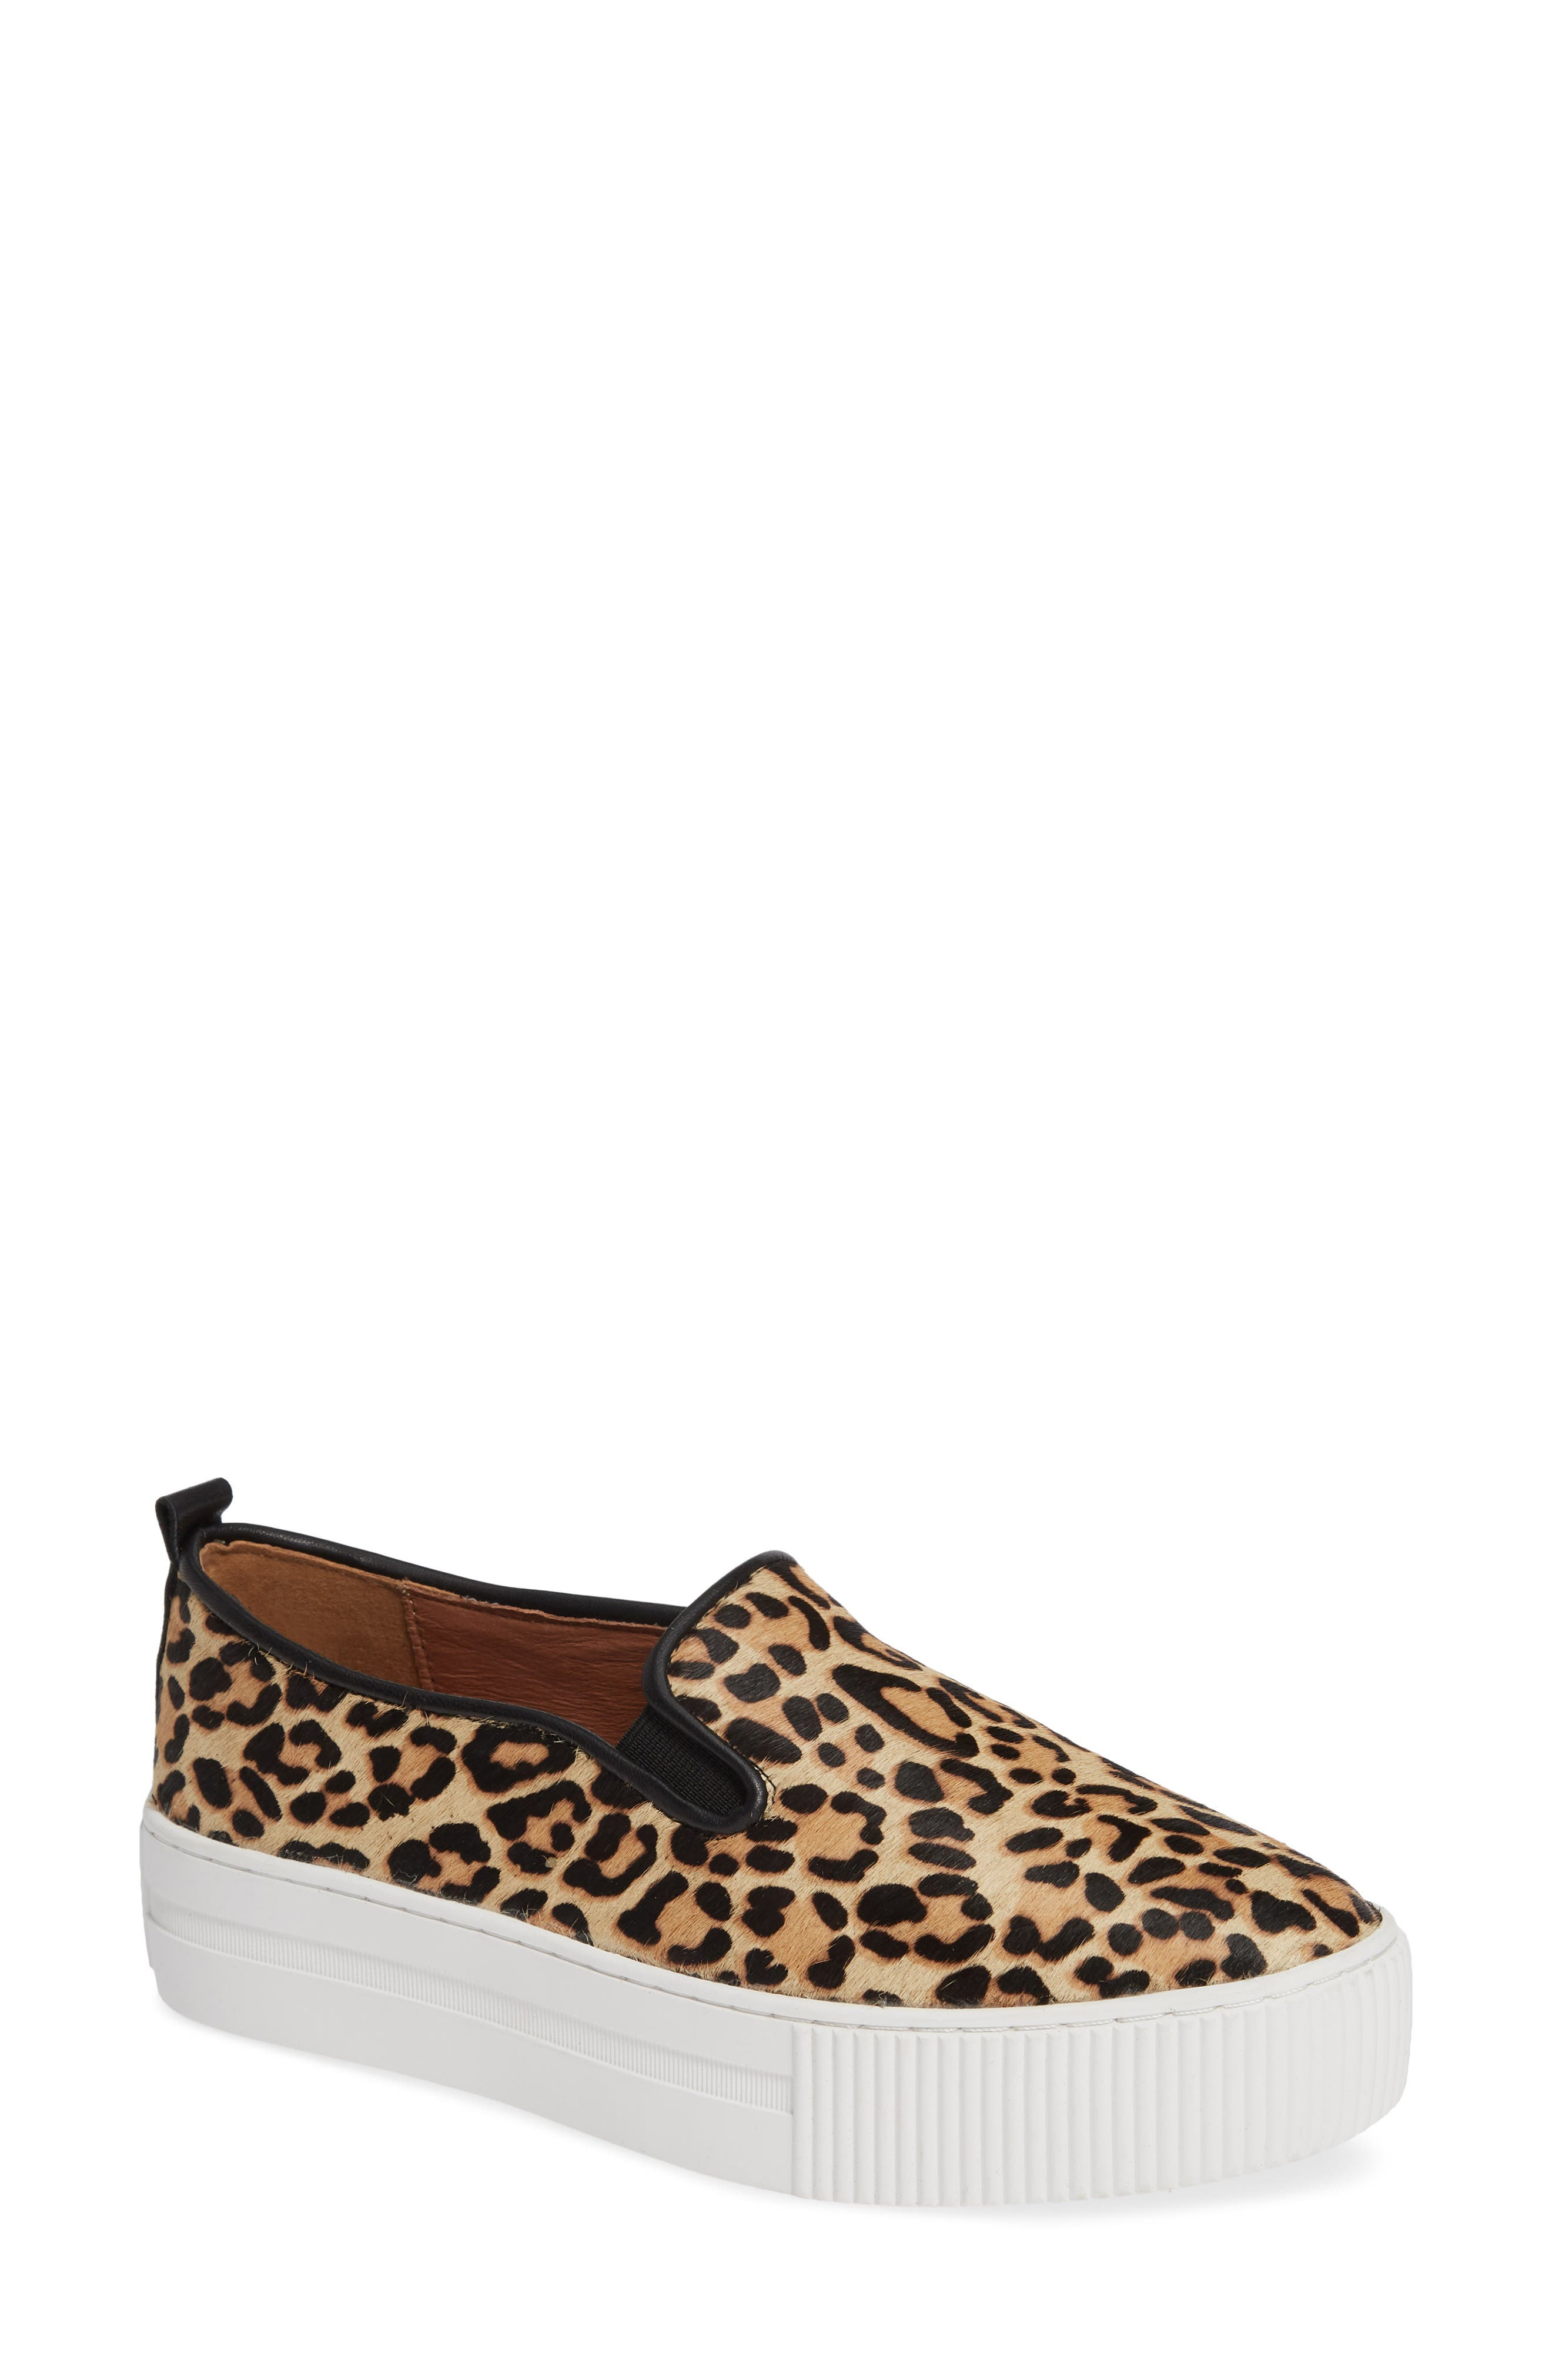 Baylee Platform Slip-On Sneaker,                             Main thumbnail 1, color,                             LEOPARD HAIRCALF